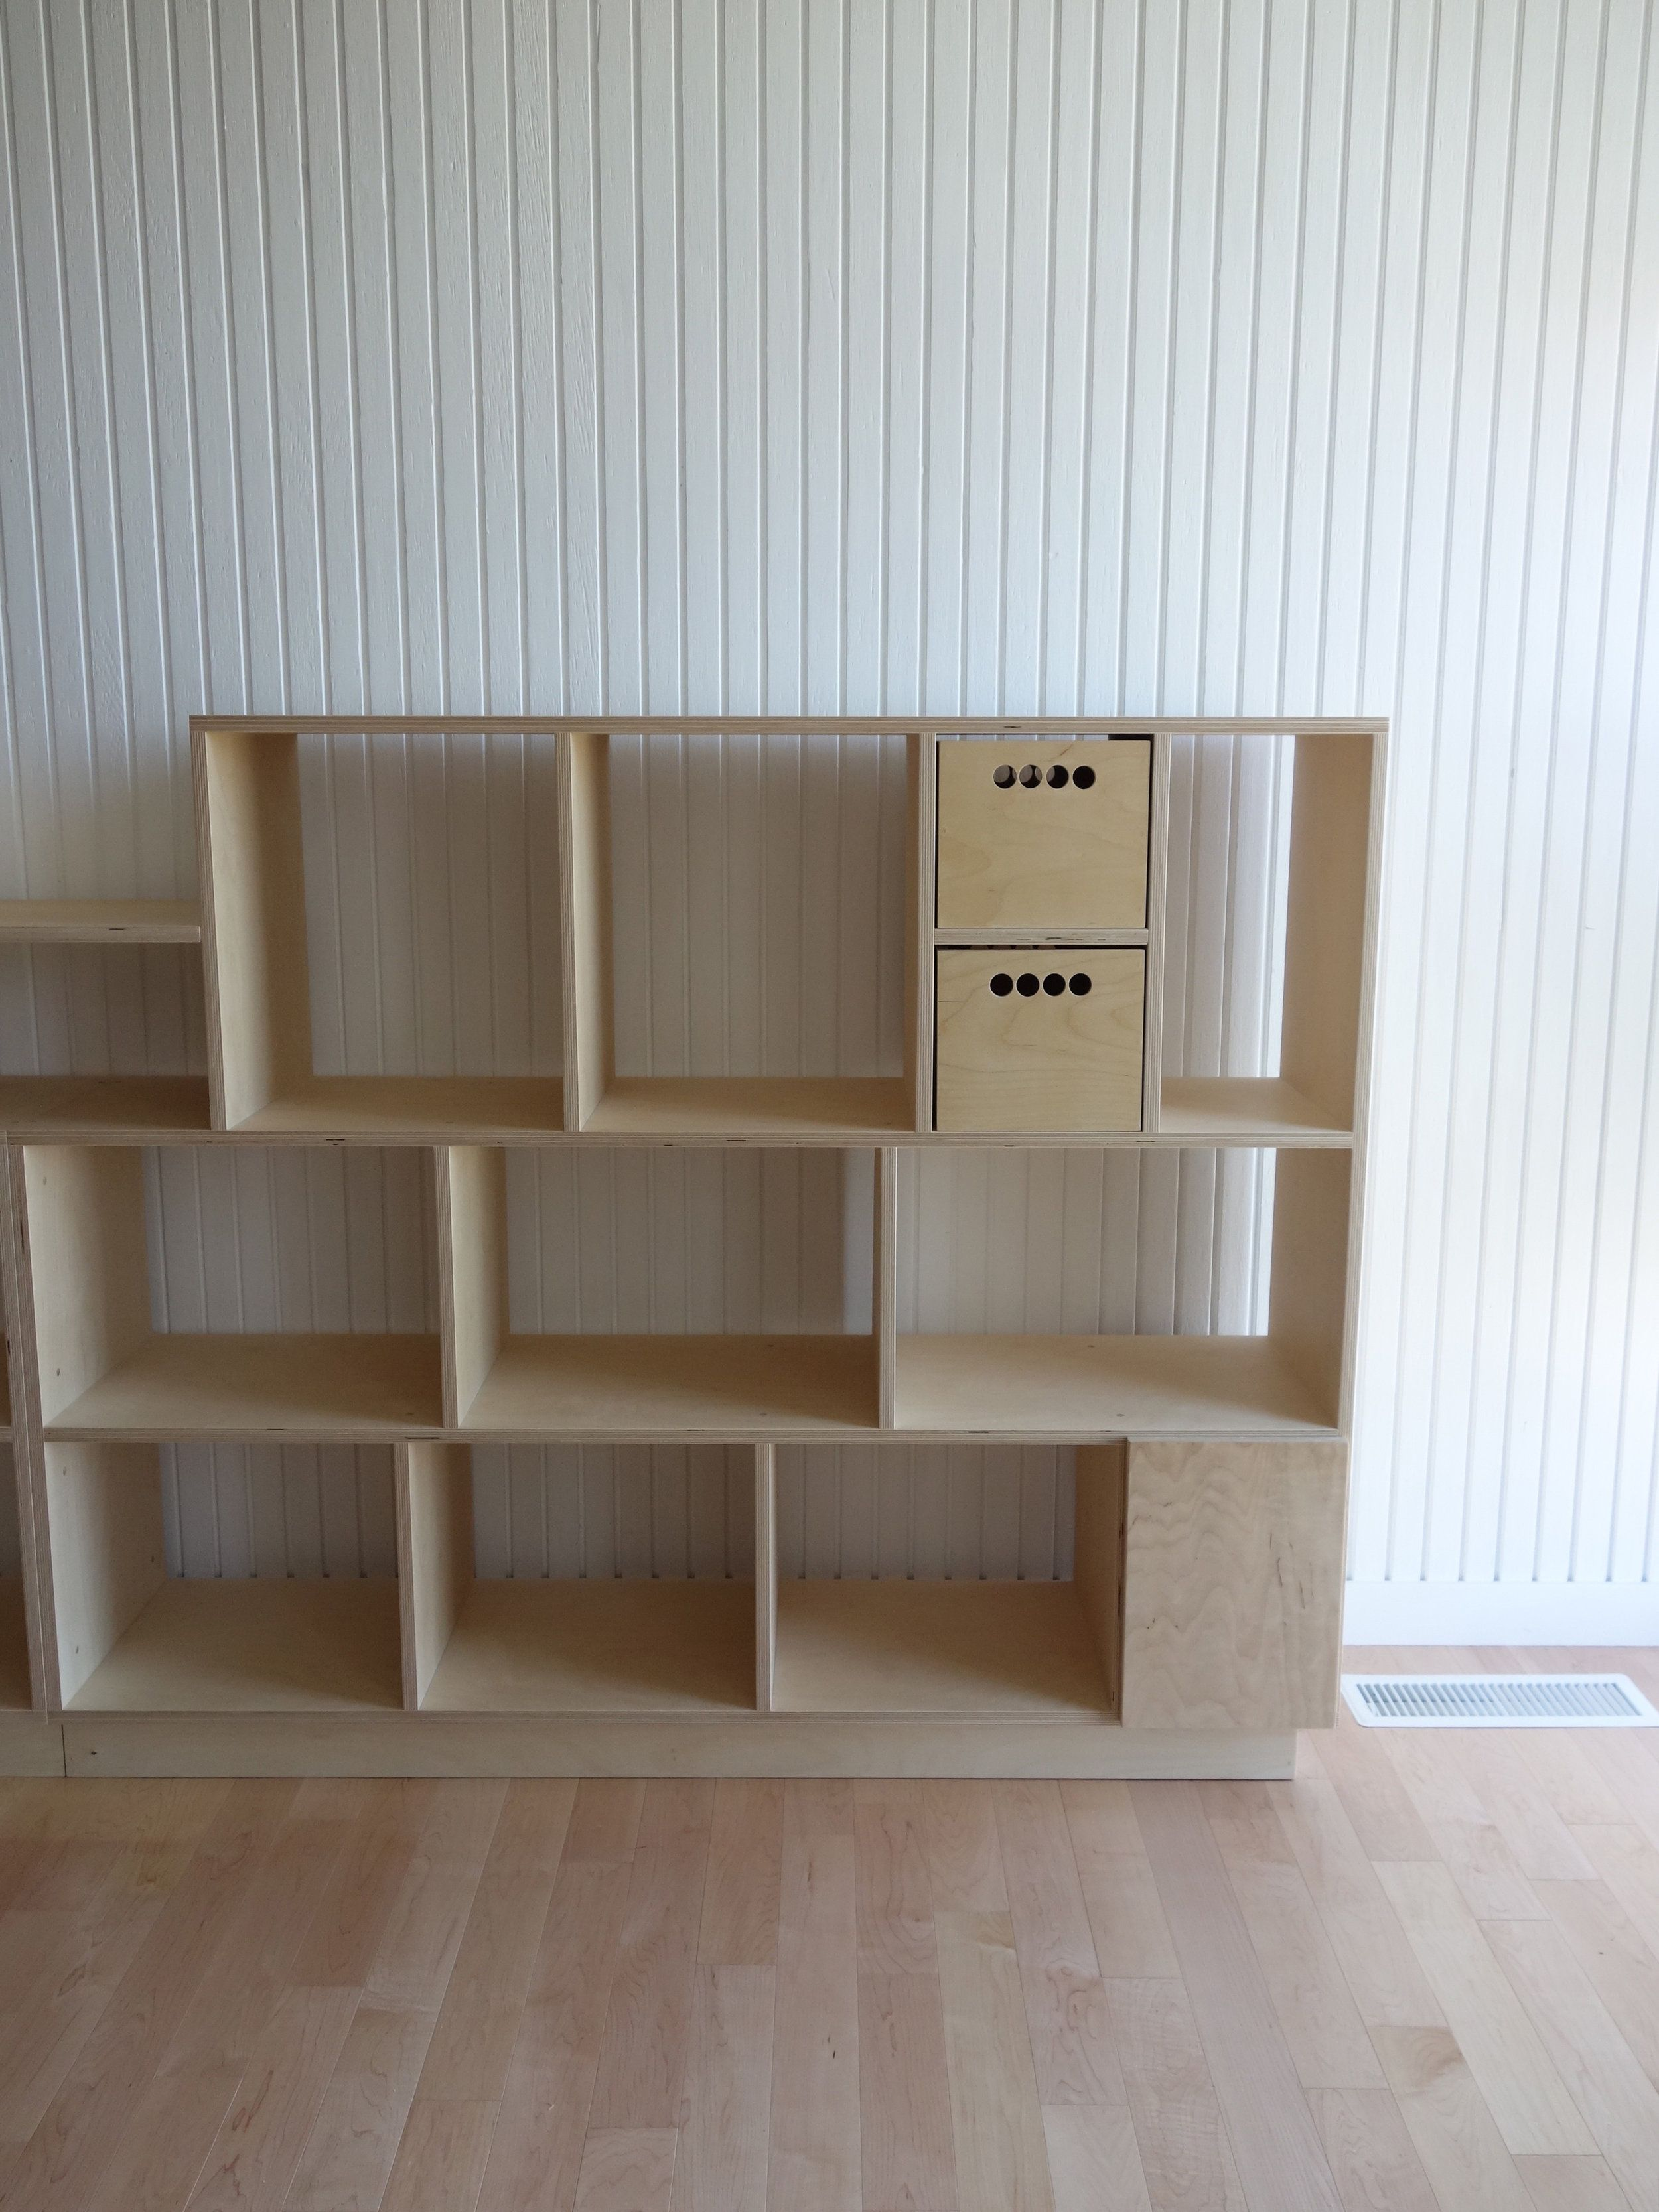 Record Shelving product image 5